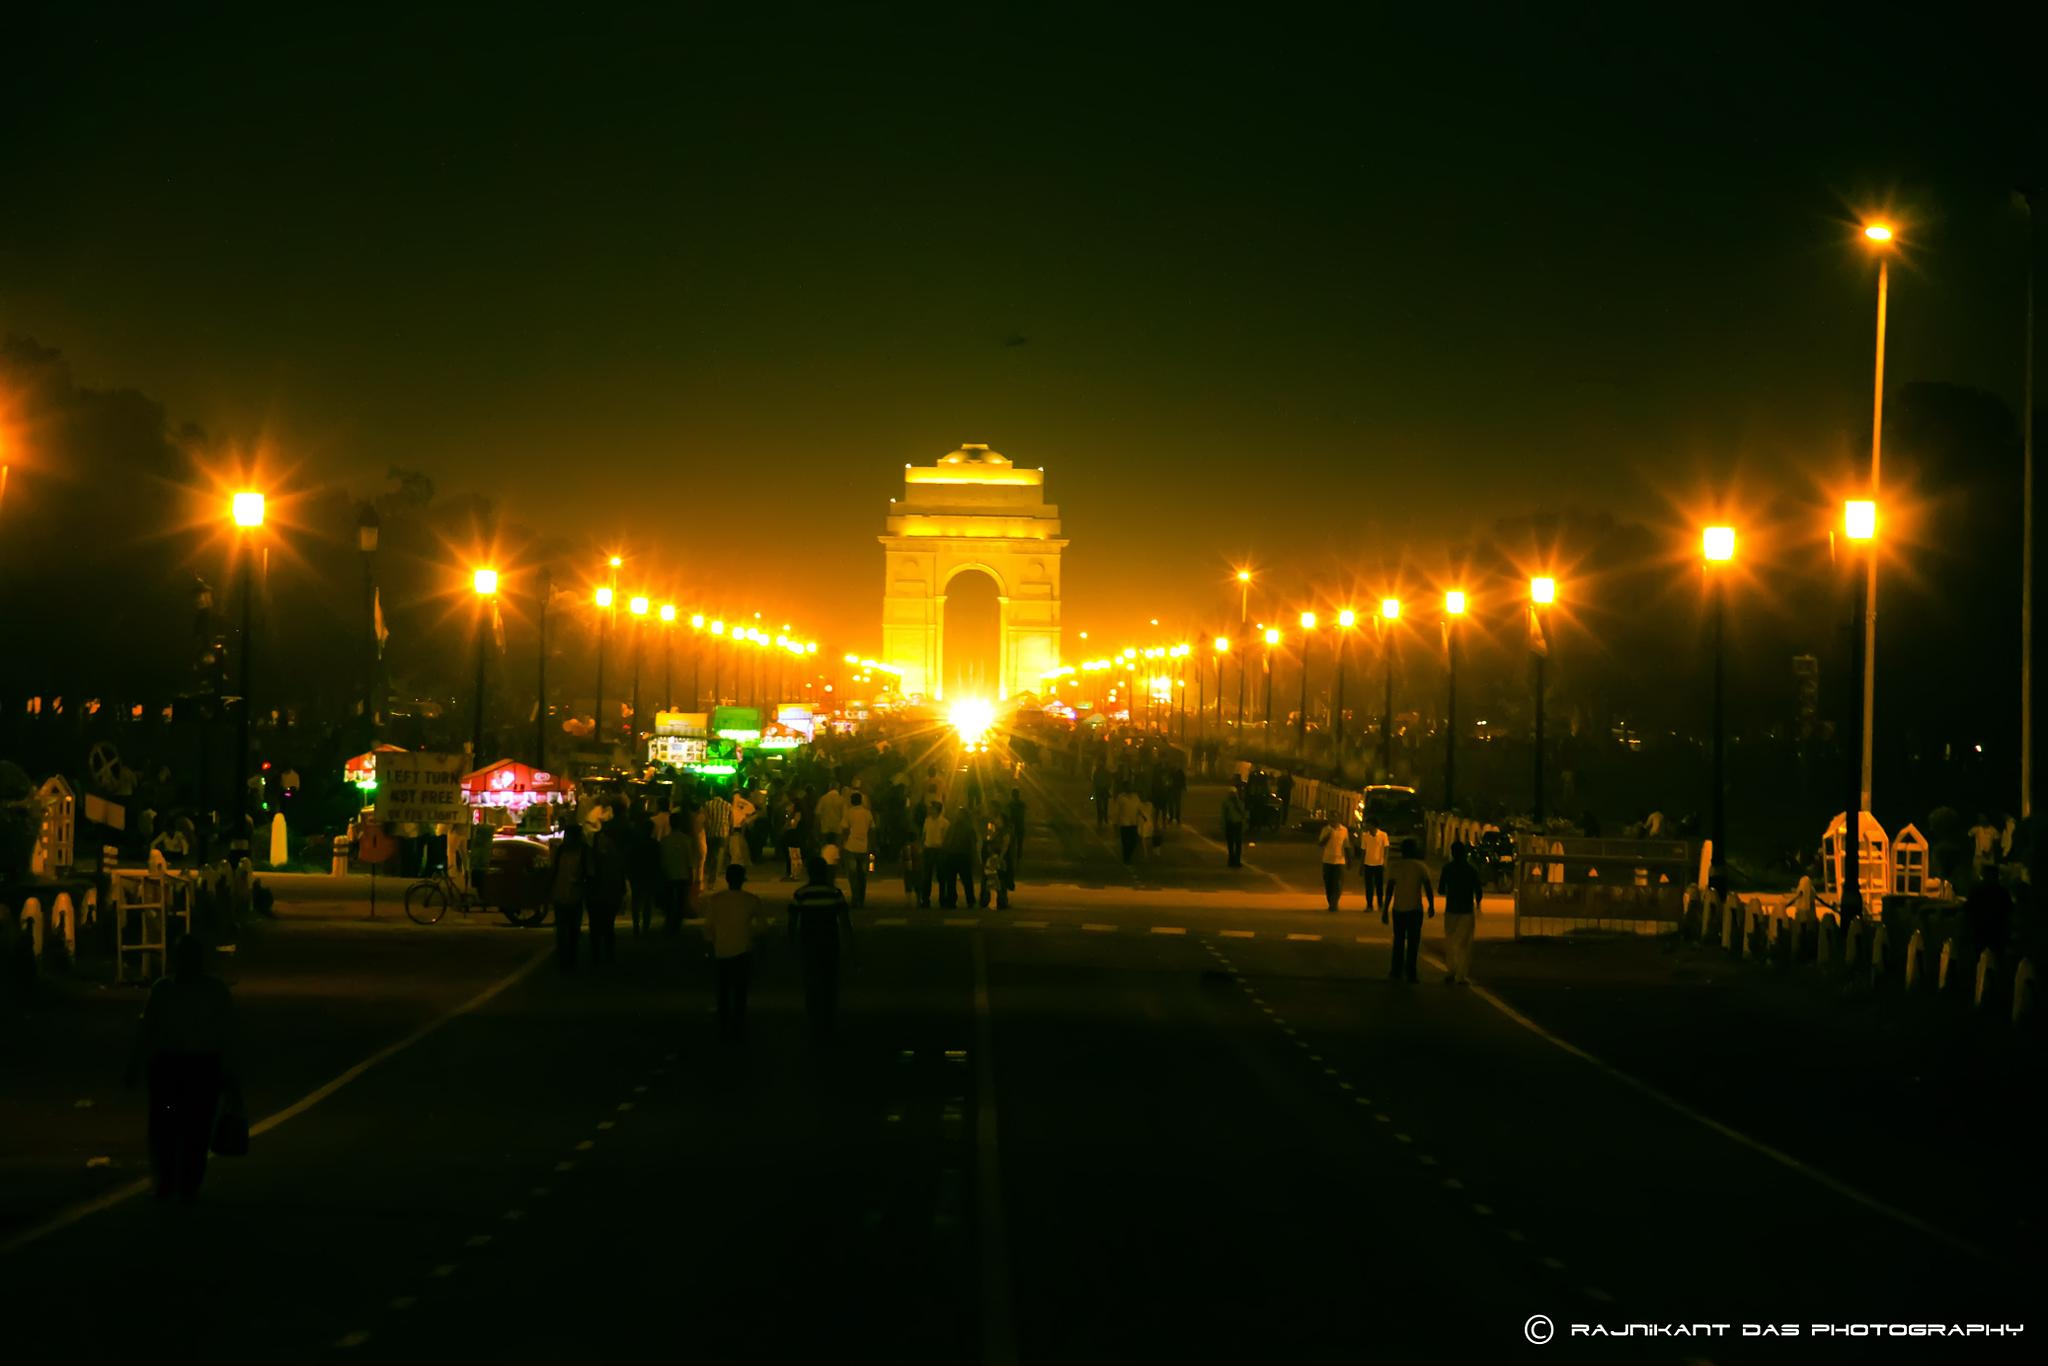 India Gate by Rajnikant Das